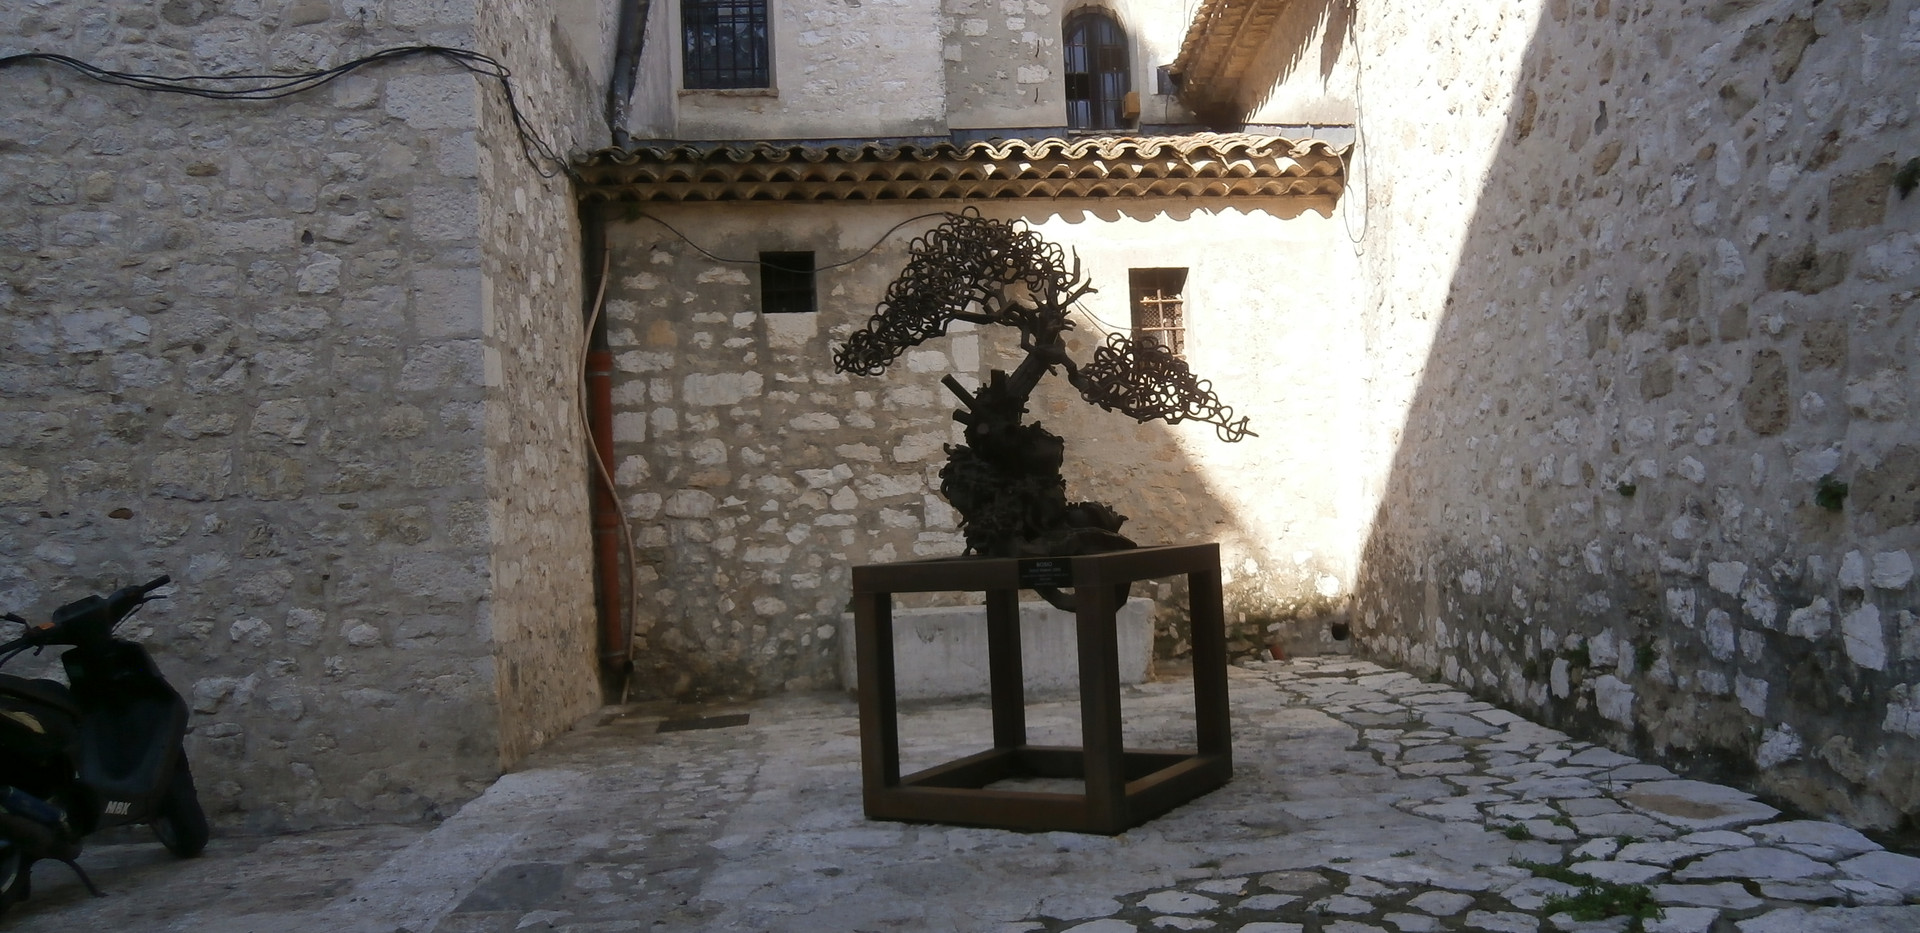 One of the many art installations in St Paul de Vence